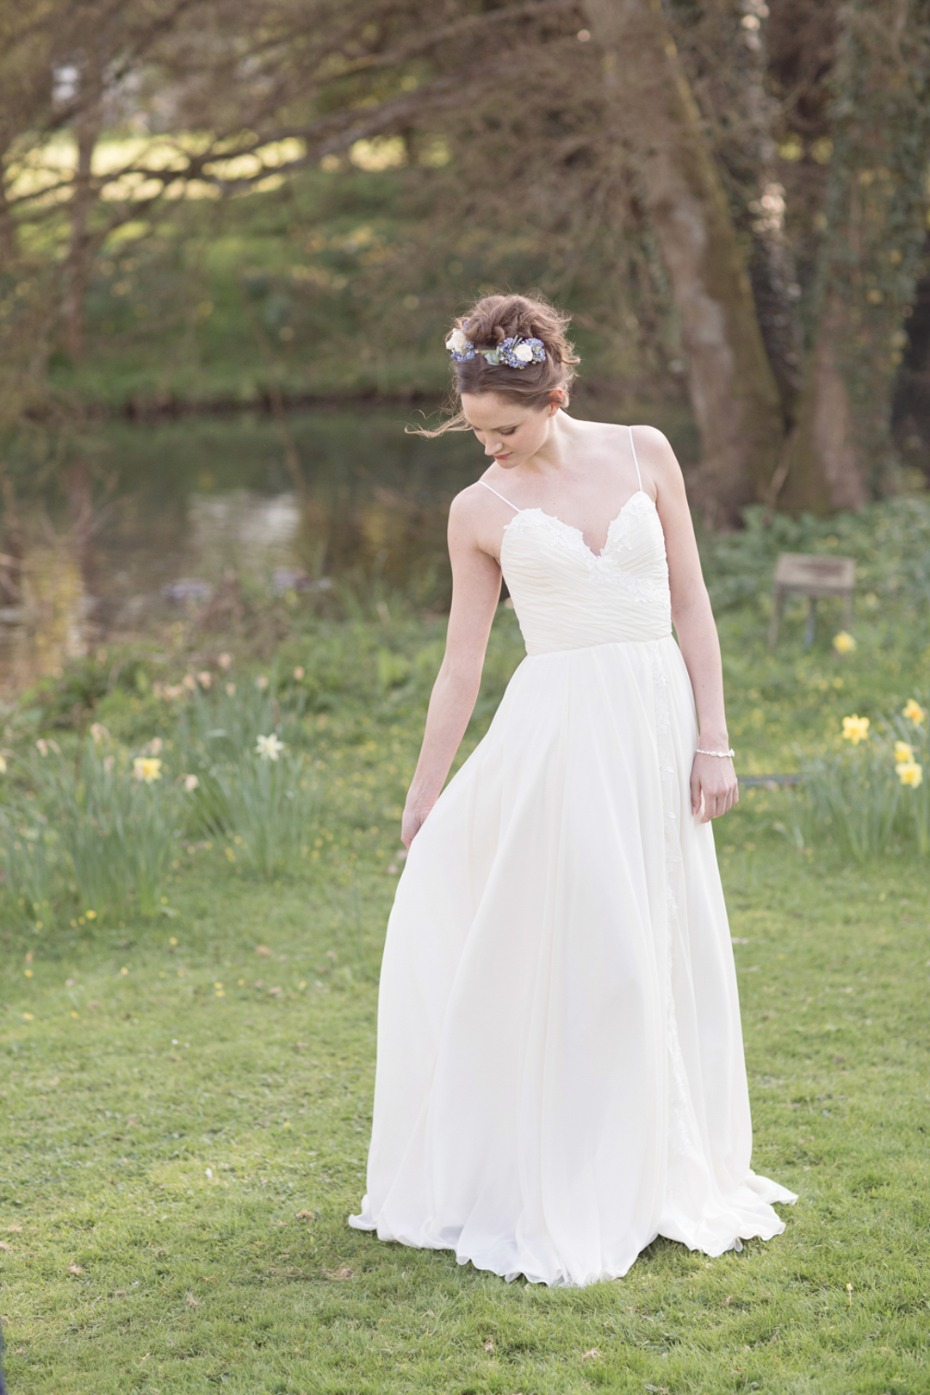 Elegant gown inspired by Sense and Sensibility